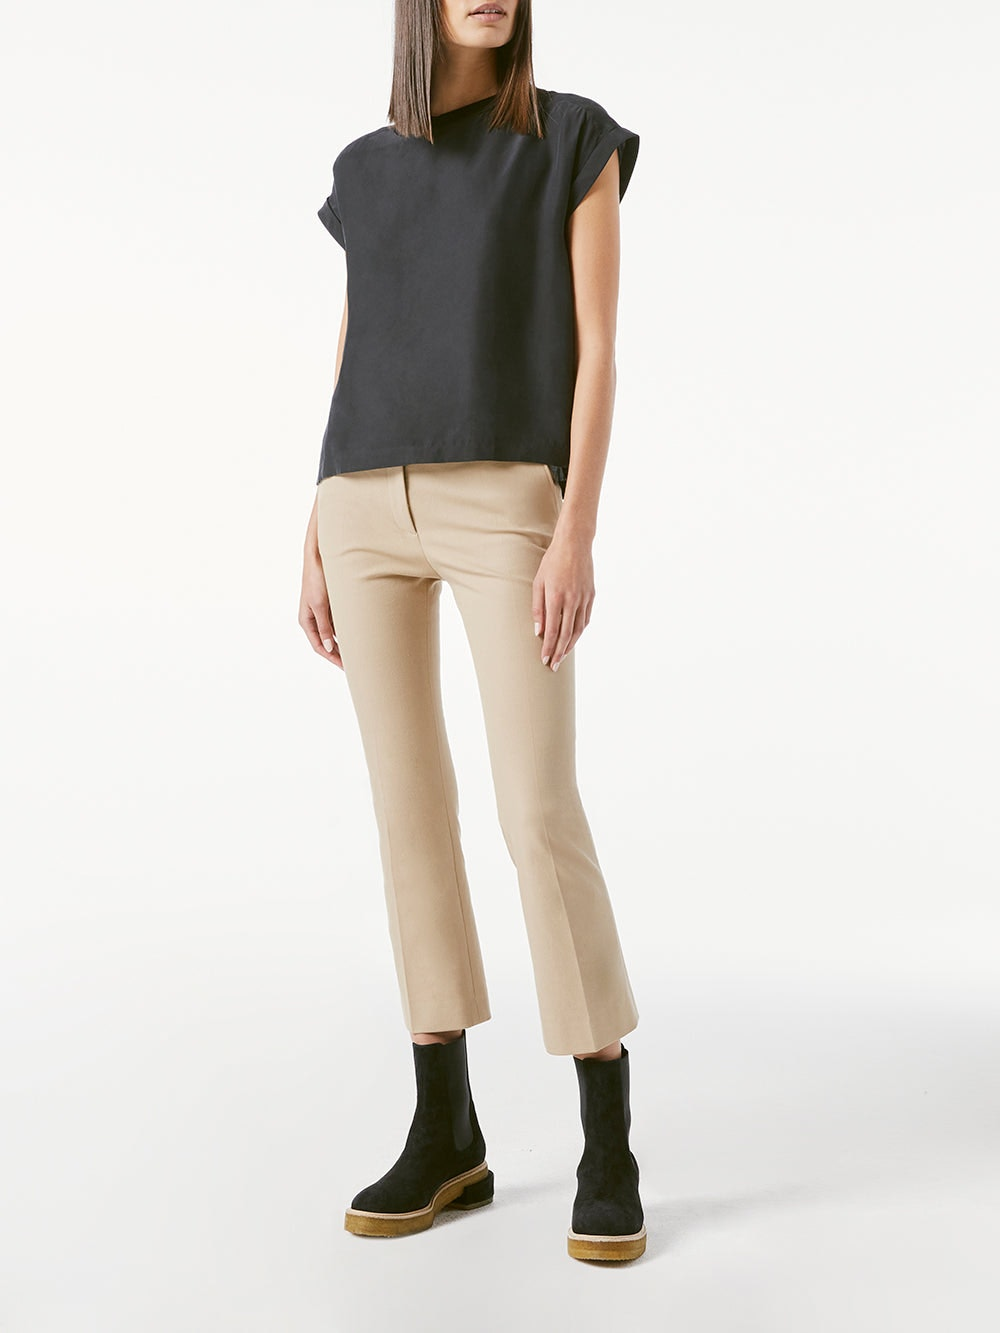 tee front full body view 2